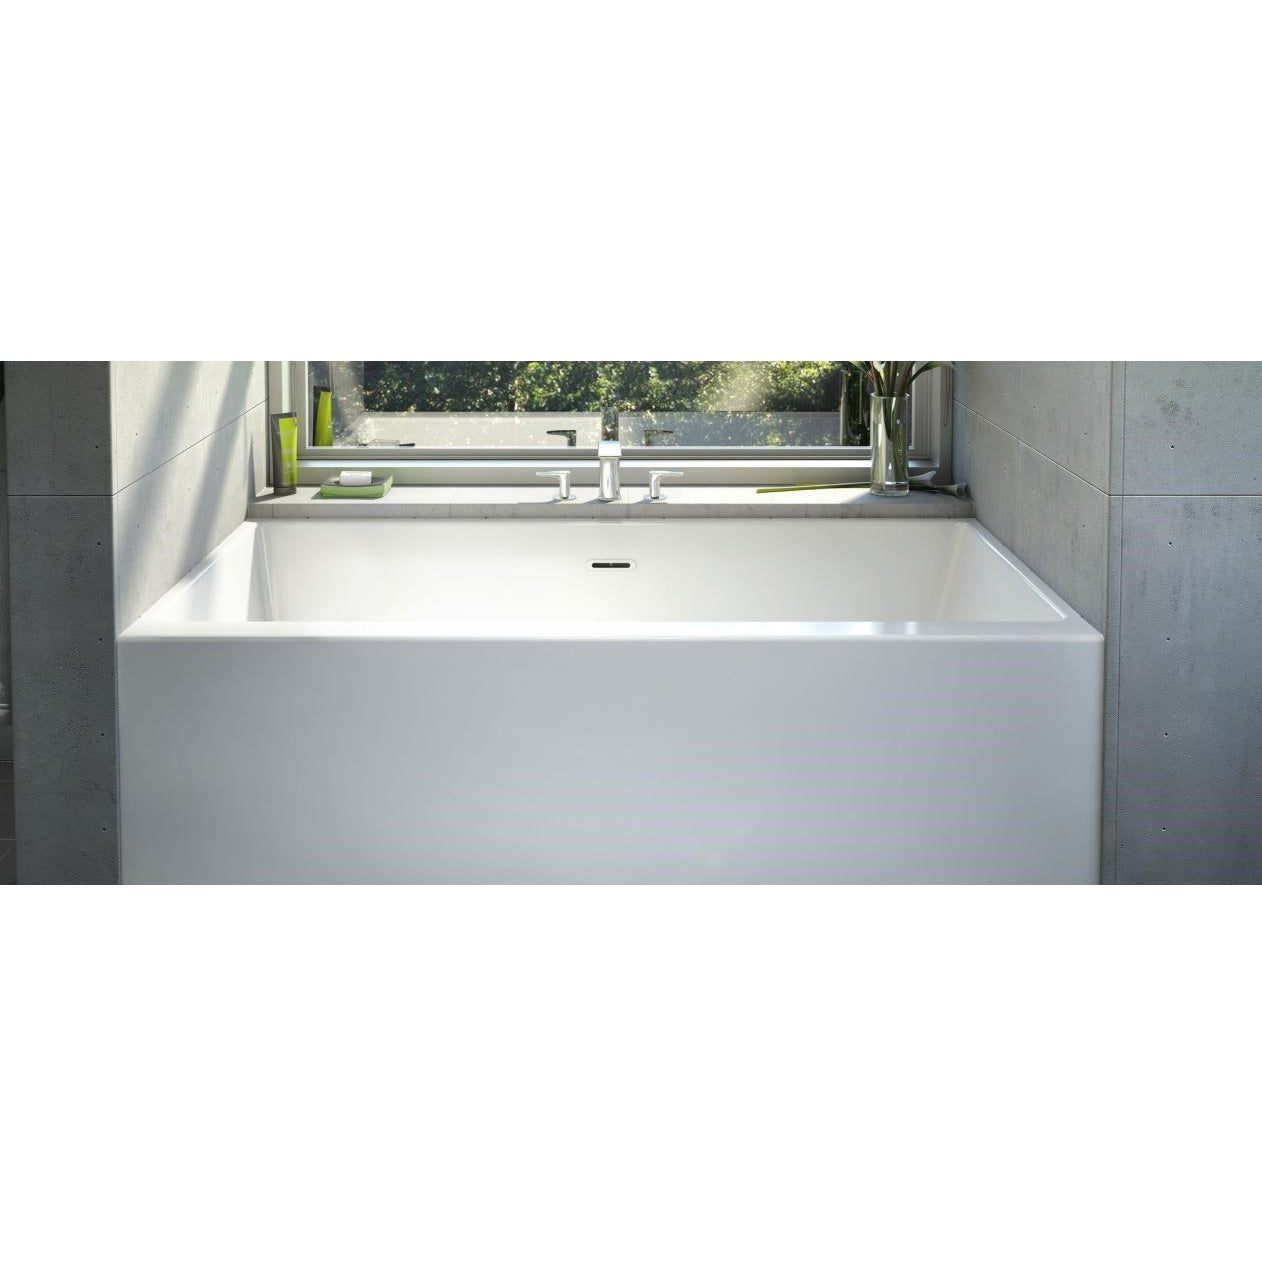 BainUltra Citti 6032 Bathtub Without Insert – Chariot Wholesale